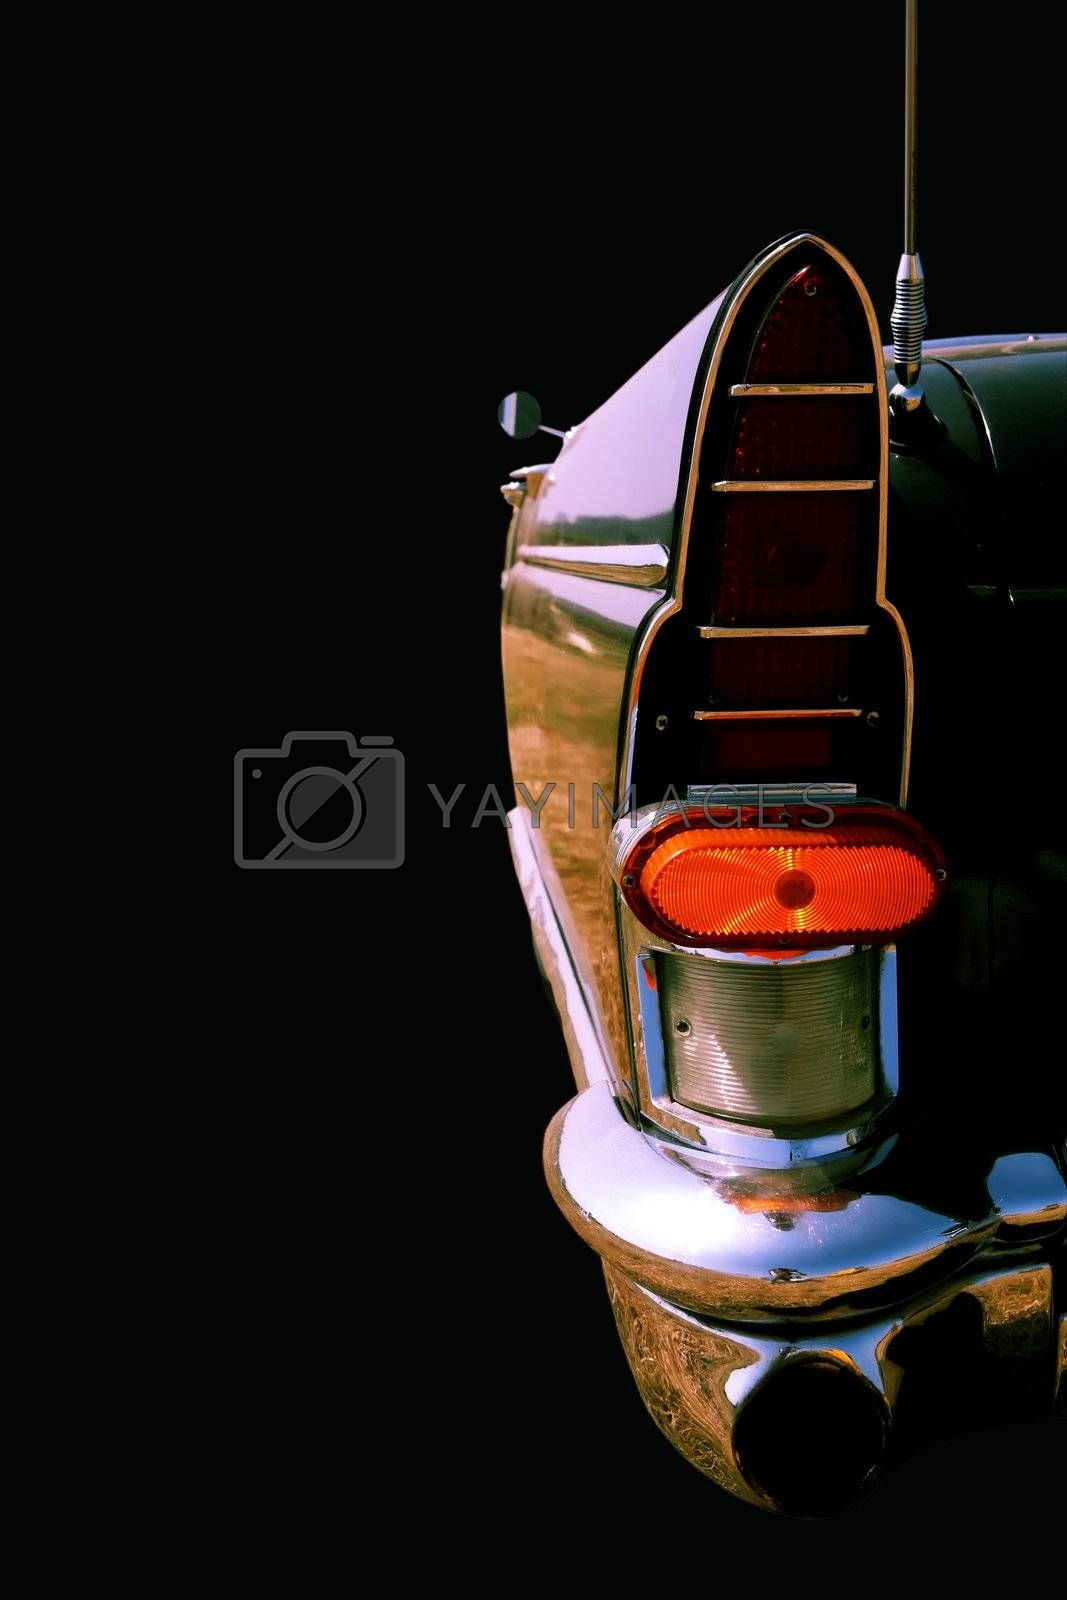 Royalty free image of Vintage Classical American Car, Close-Up by Astroid